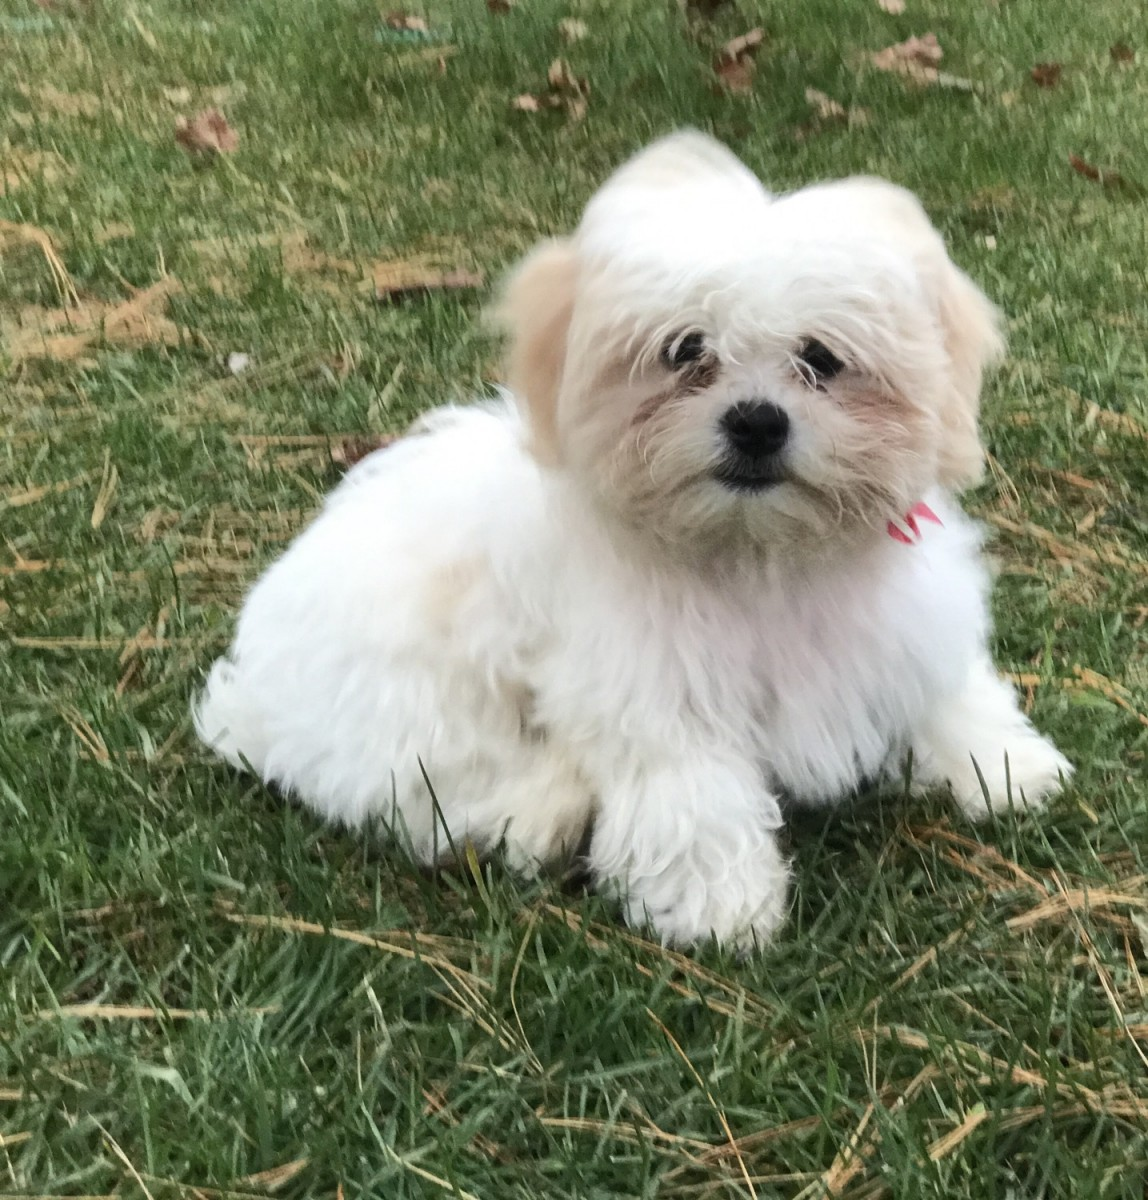 shih tzu puppies for sale in michigan shih tzu puppies for sale cadillac mi 284795 petzlover 9968